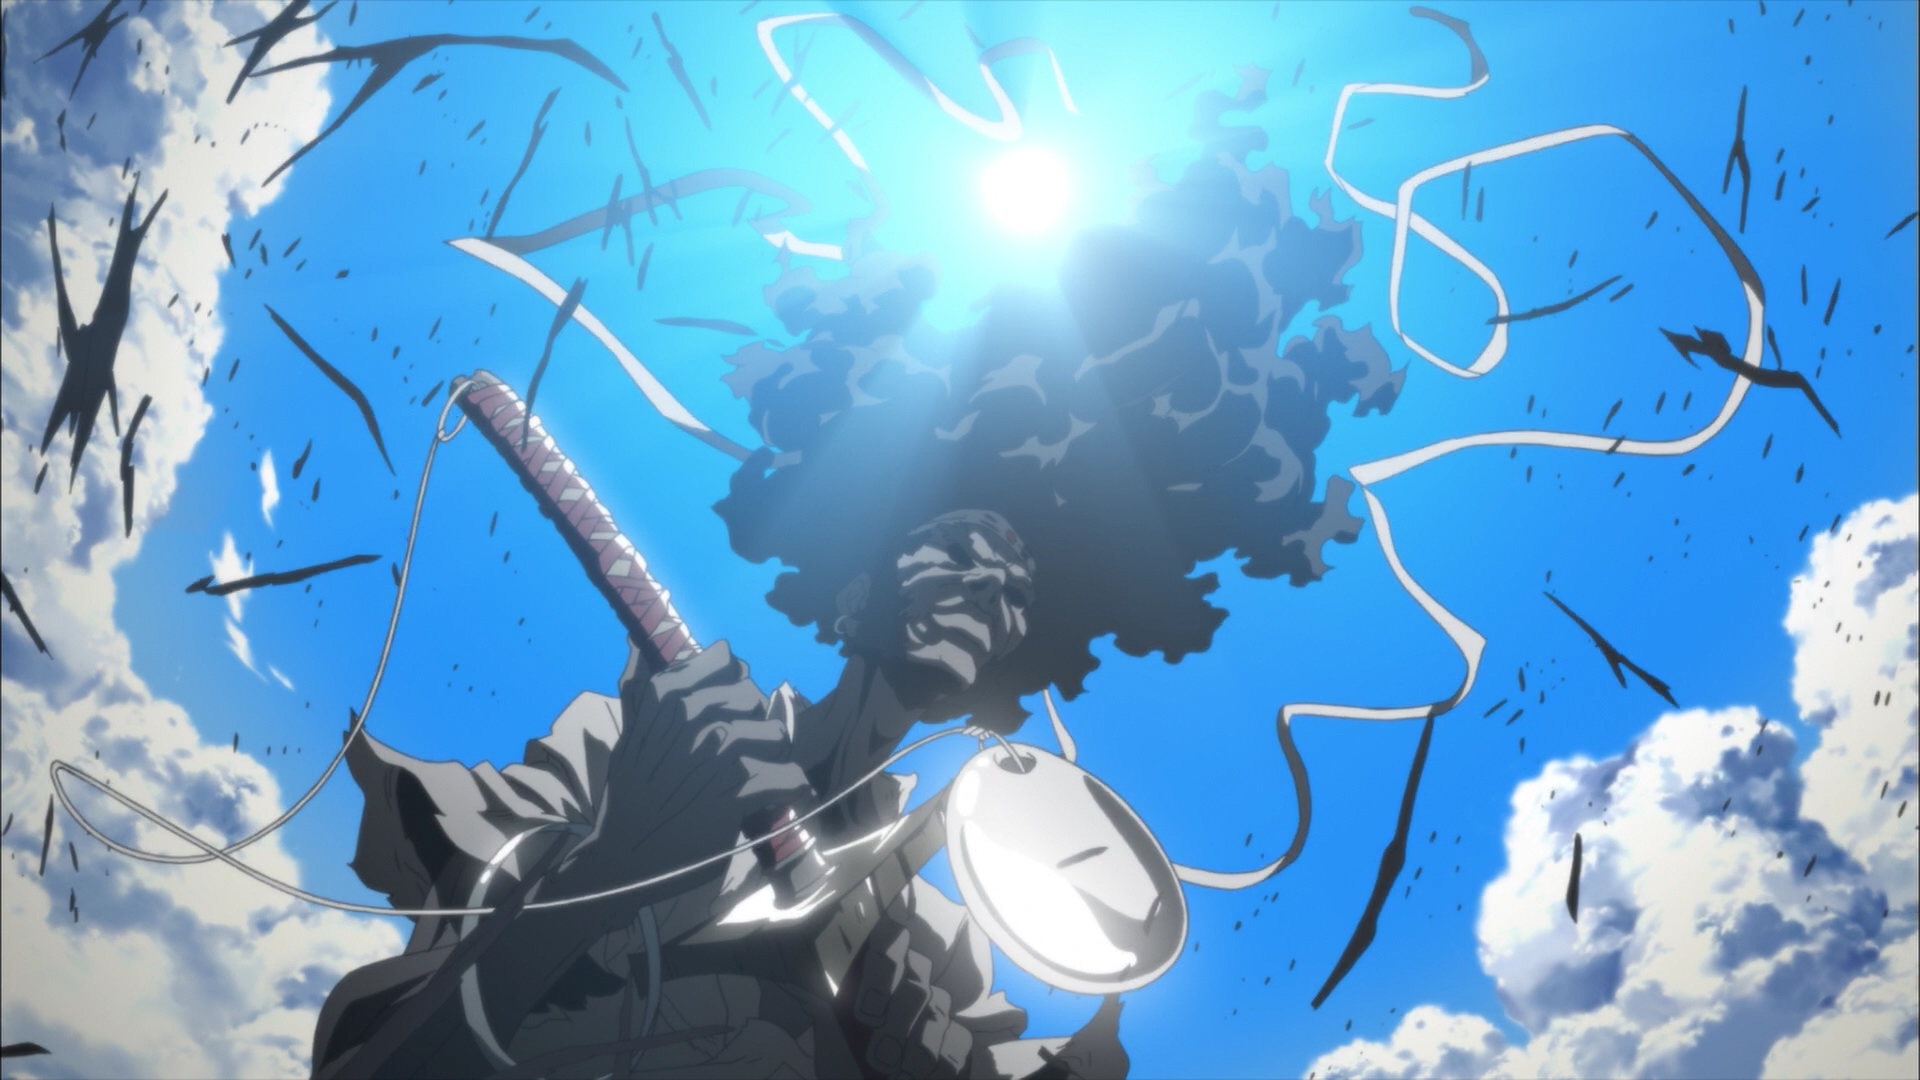 Afro Samurai Resurrection wallpaper 195308 1920x1080